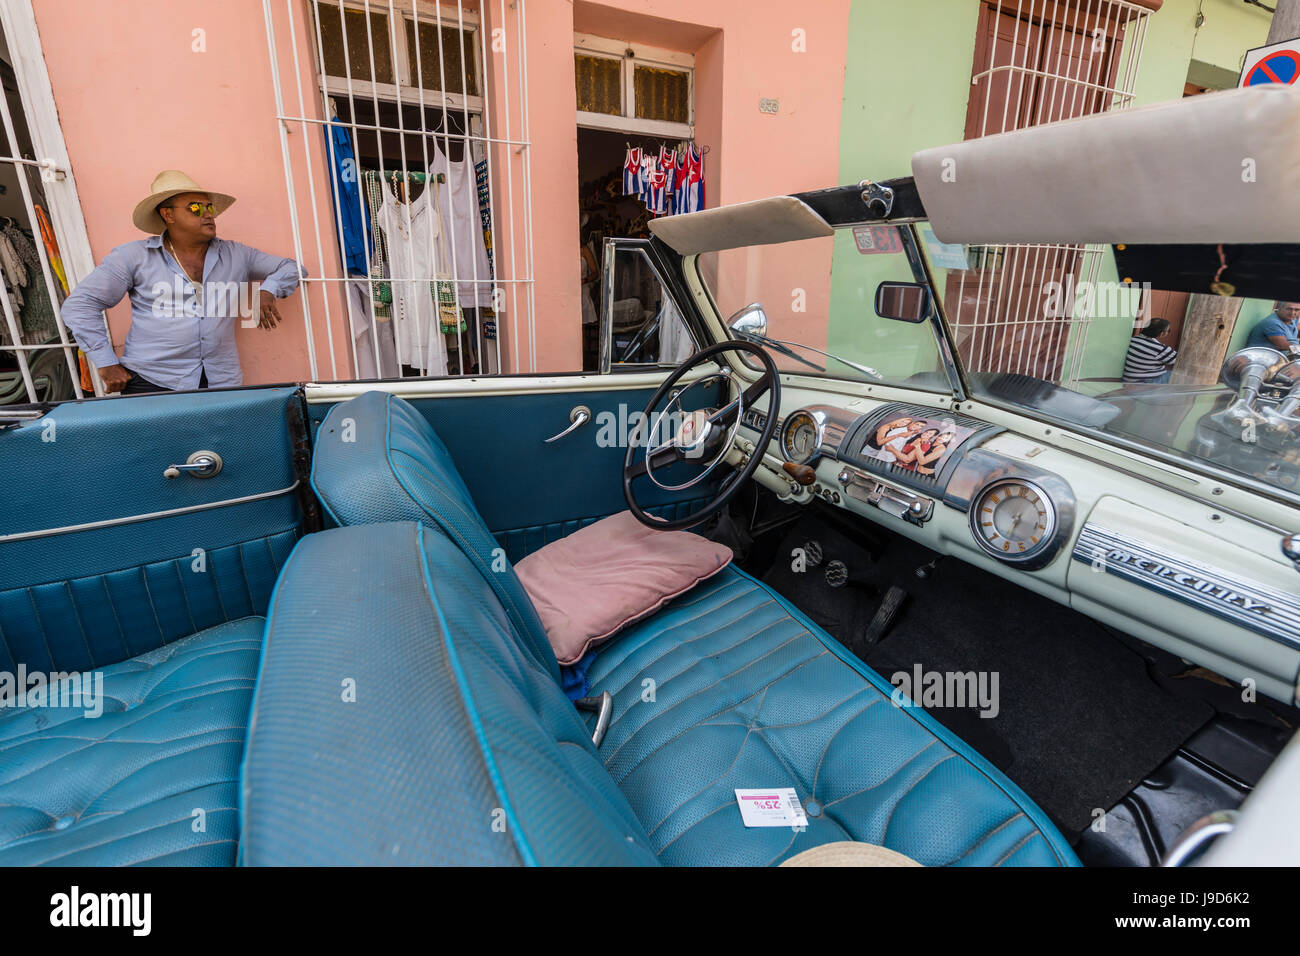 A vintage 1948 Mercury Eight American car working as a taxi, in the town of Trinidad, Cuba, West Indies, Caribbean - Stock Image